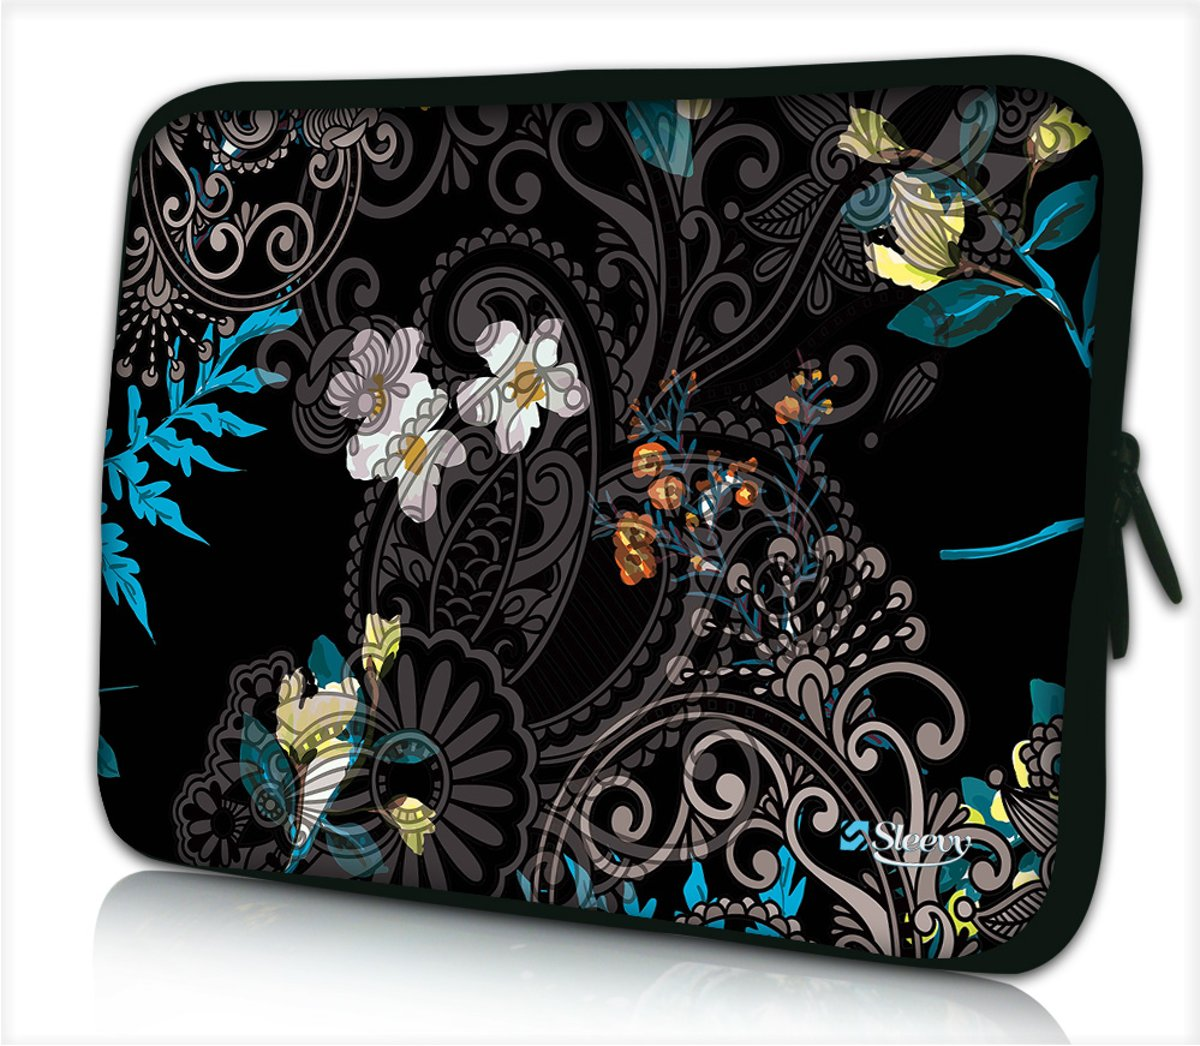 Tablet hoes / laptophoes 10,1 inch zwart patroon bloemen - Sleevy - laptop sleeve - tablet sleeve